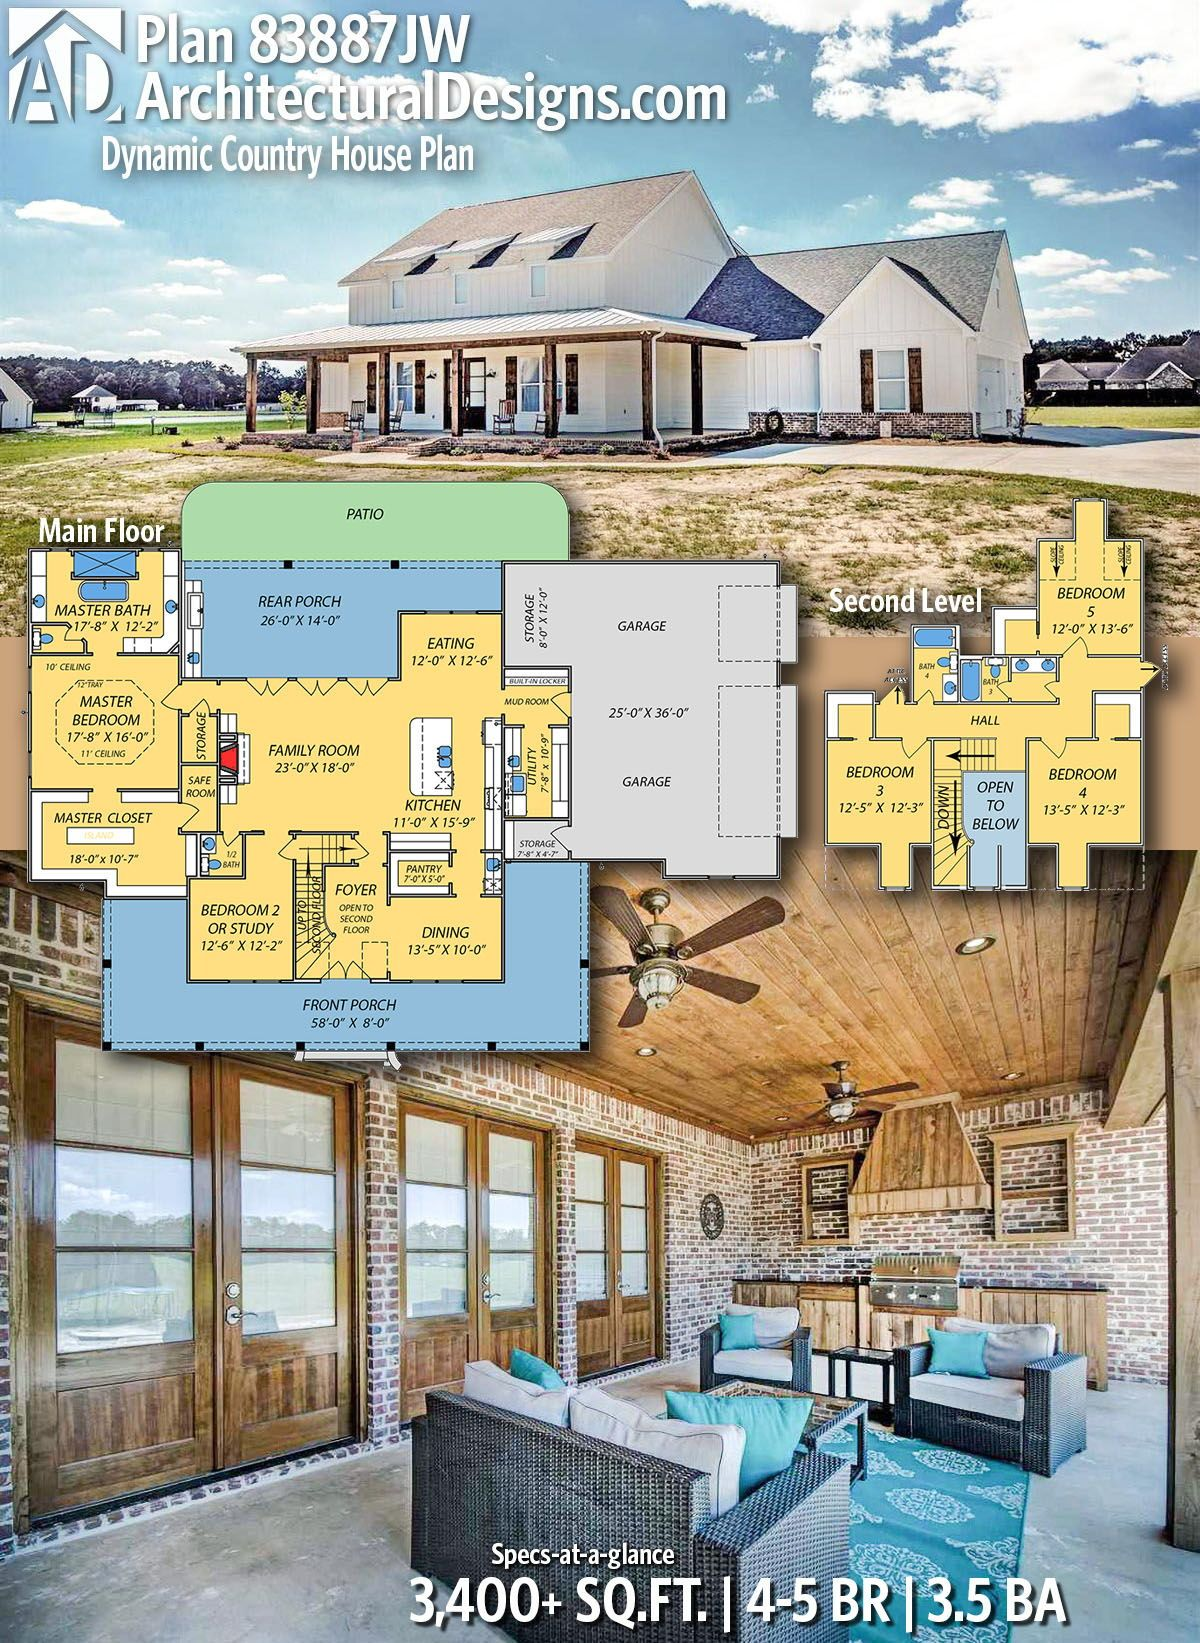 Plan 83887jw Dynamic Country House Plan With Safe Room Country House Plan House Plans Safe Room